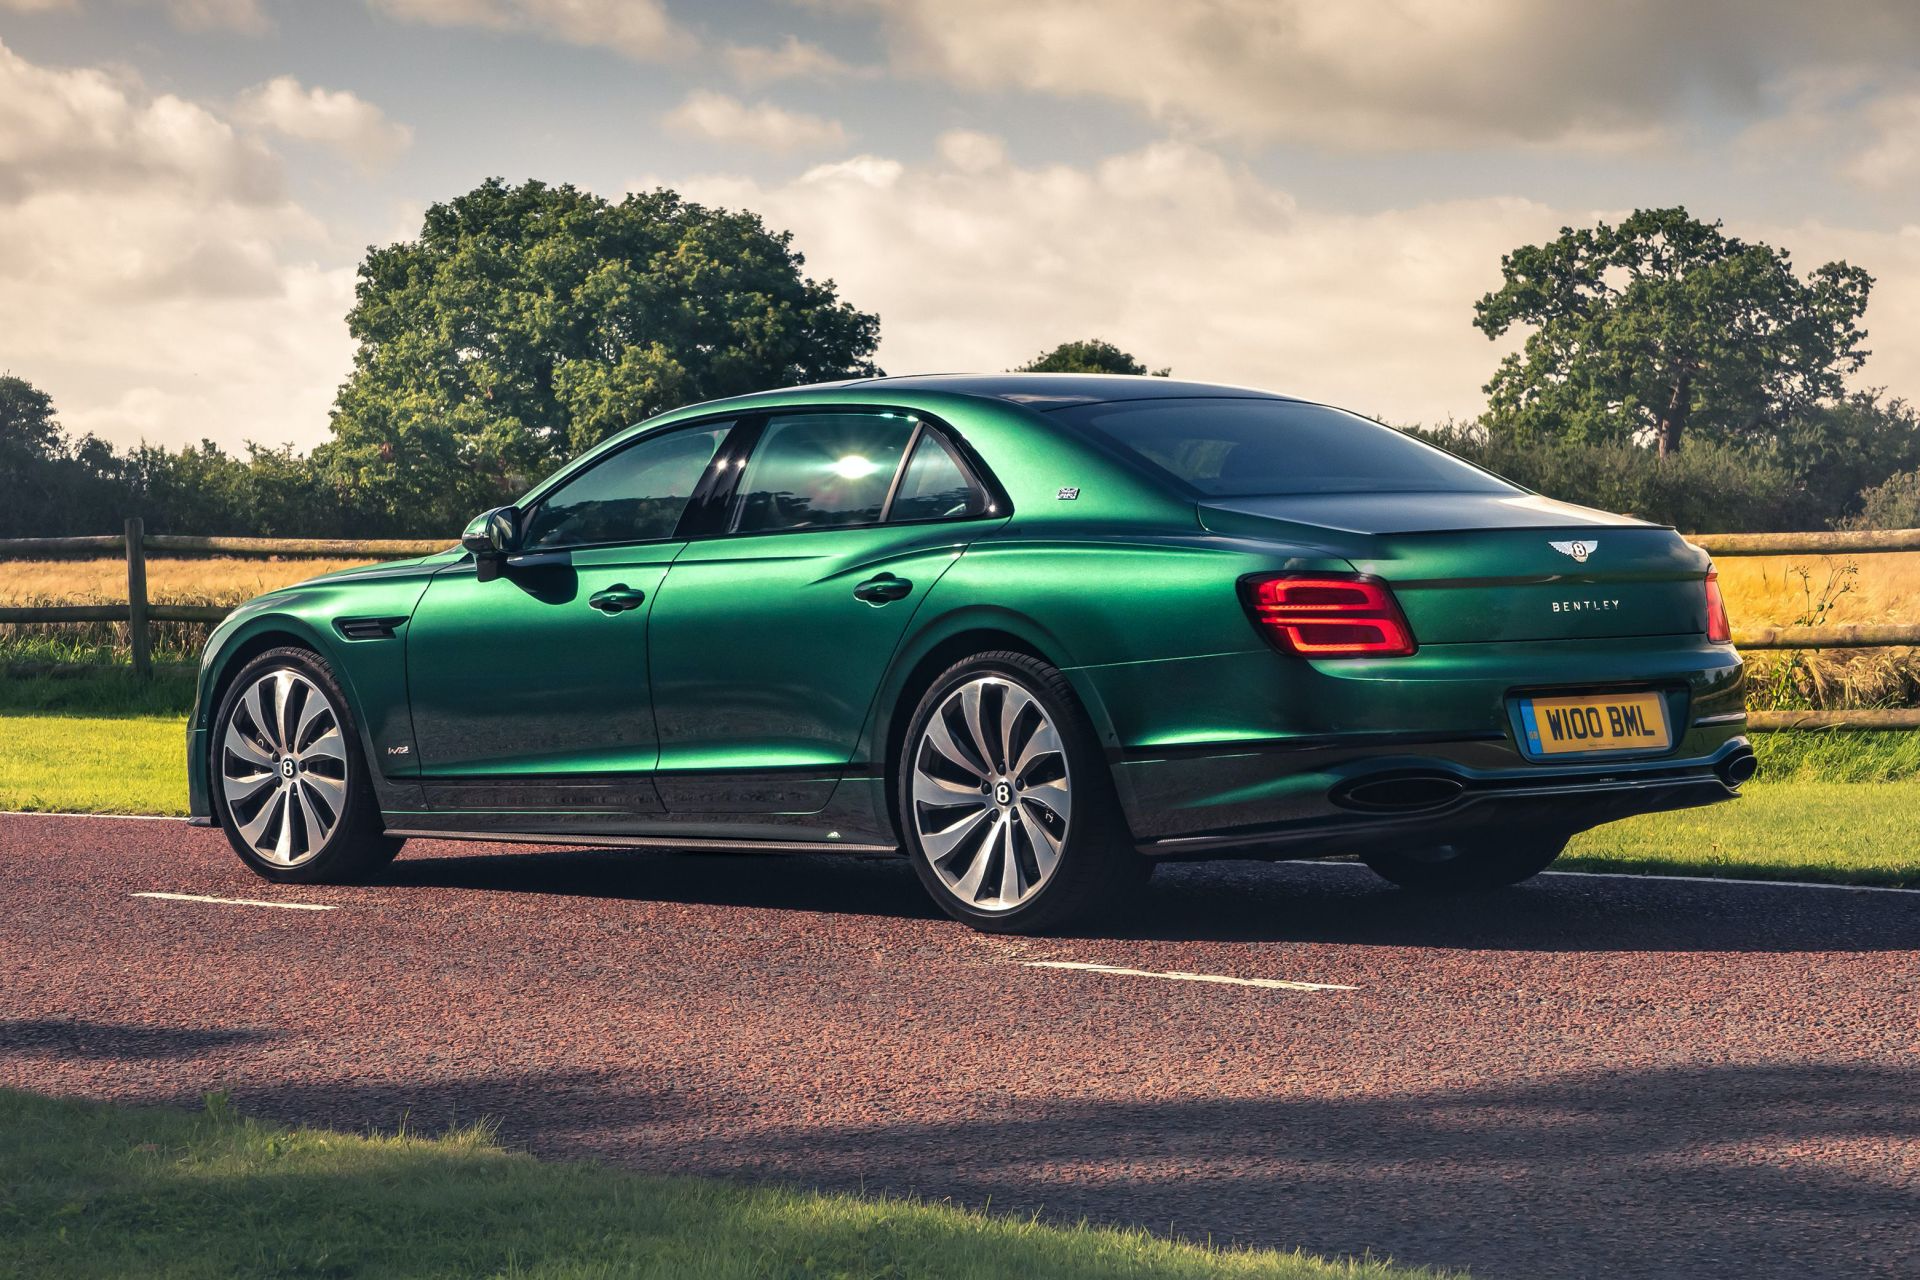 2019 - [Bentley] Flying Spur - Page 4 200901070908655917